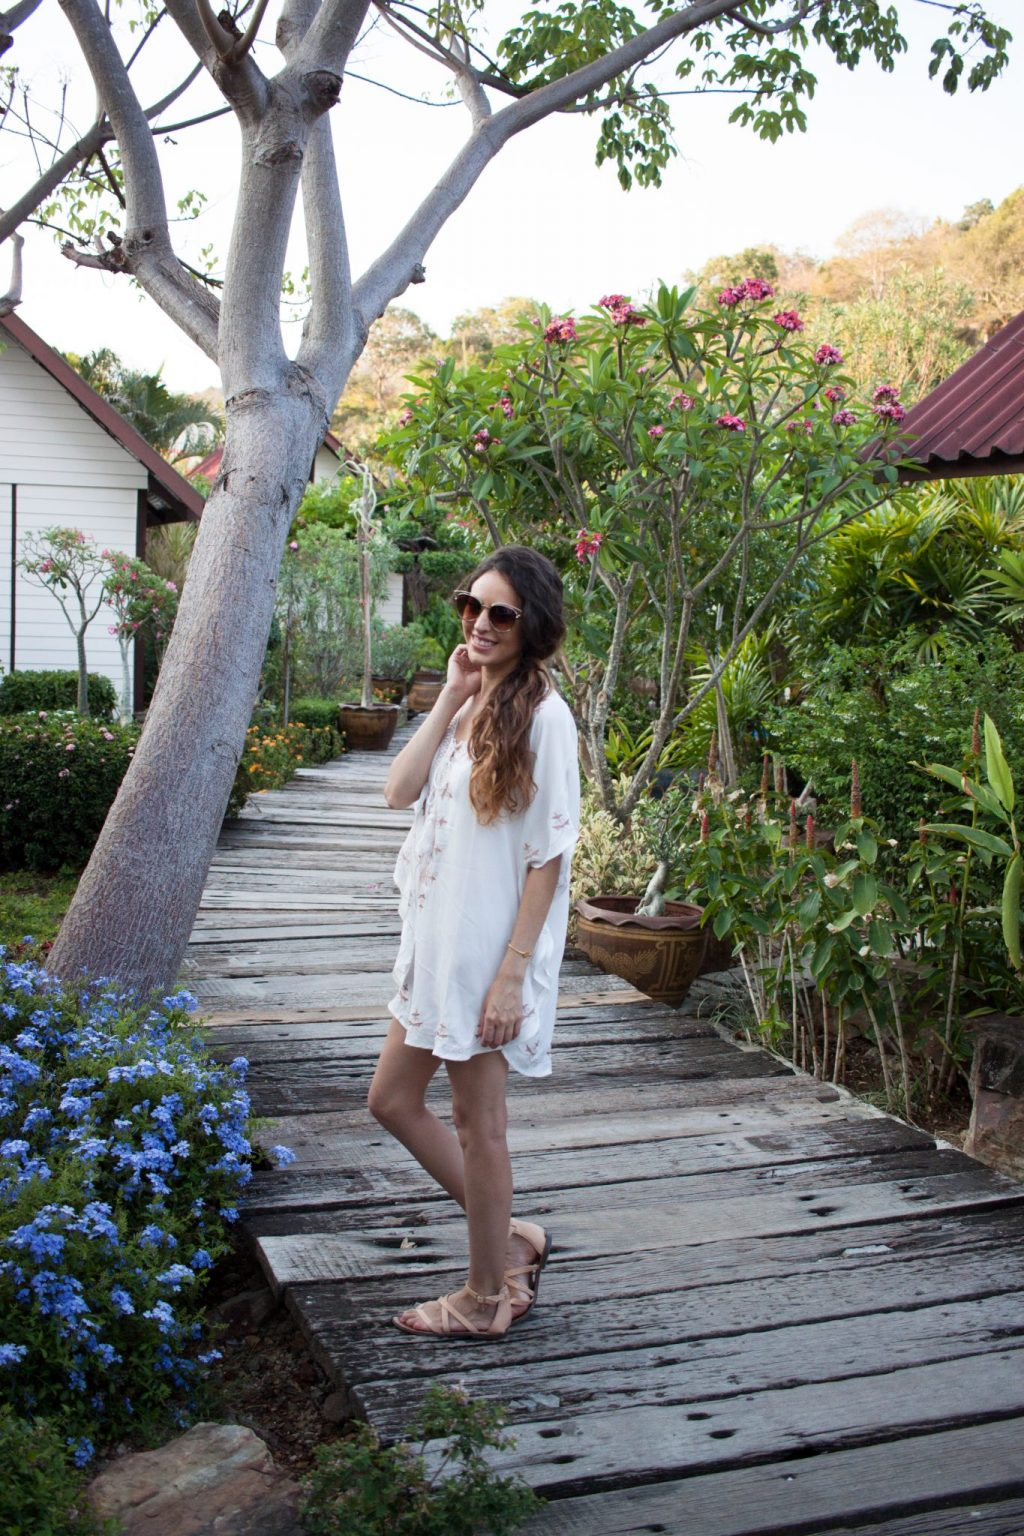 koh phi phi thailand, island vibes, beach outfit, what to wear on vacation, chicwish, island style, beach style, summer outfit ideas, summer style, sam edelman sandals, thailand